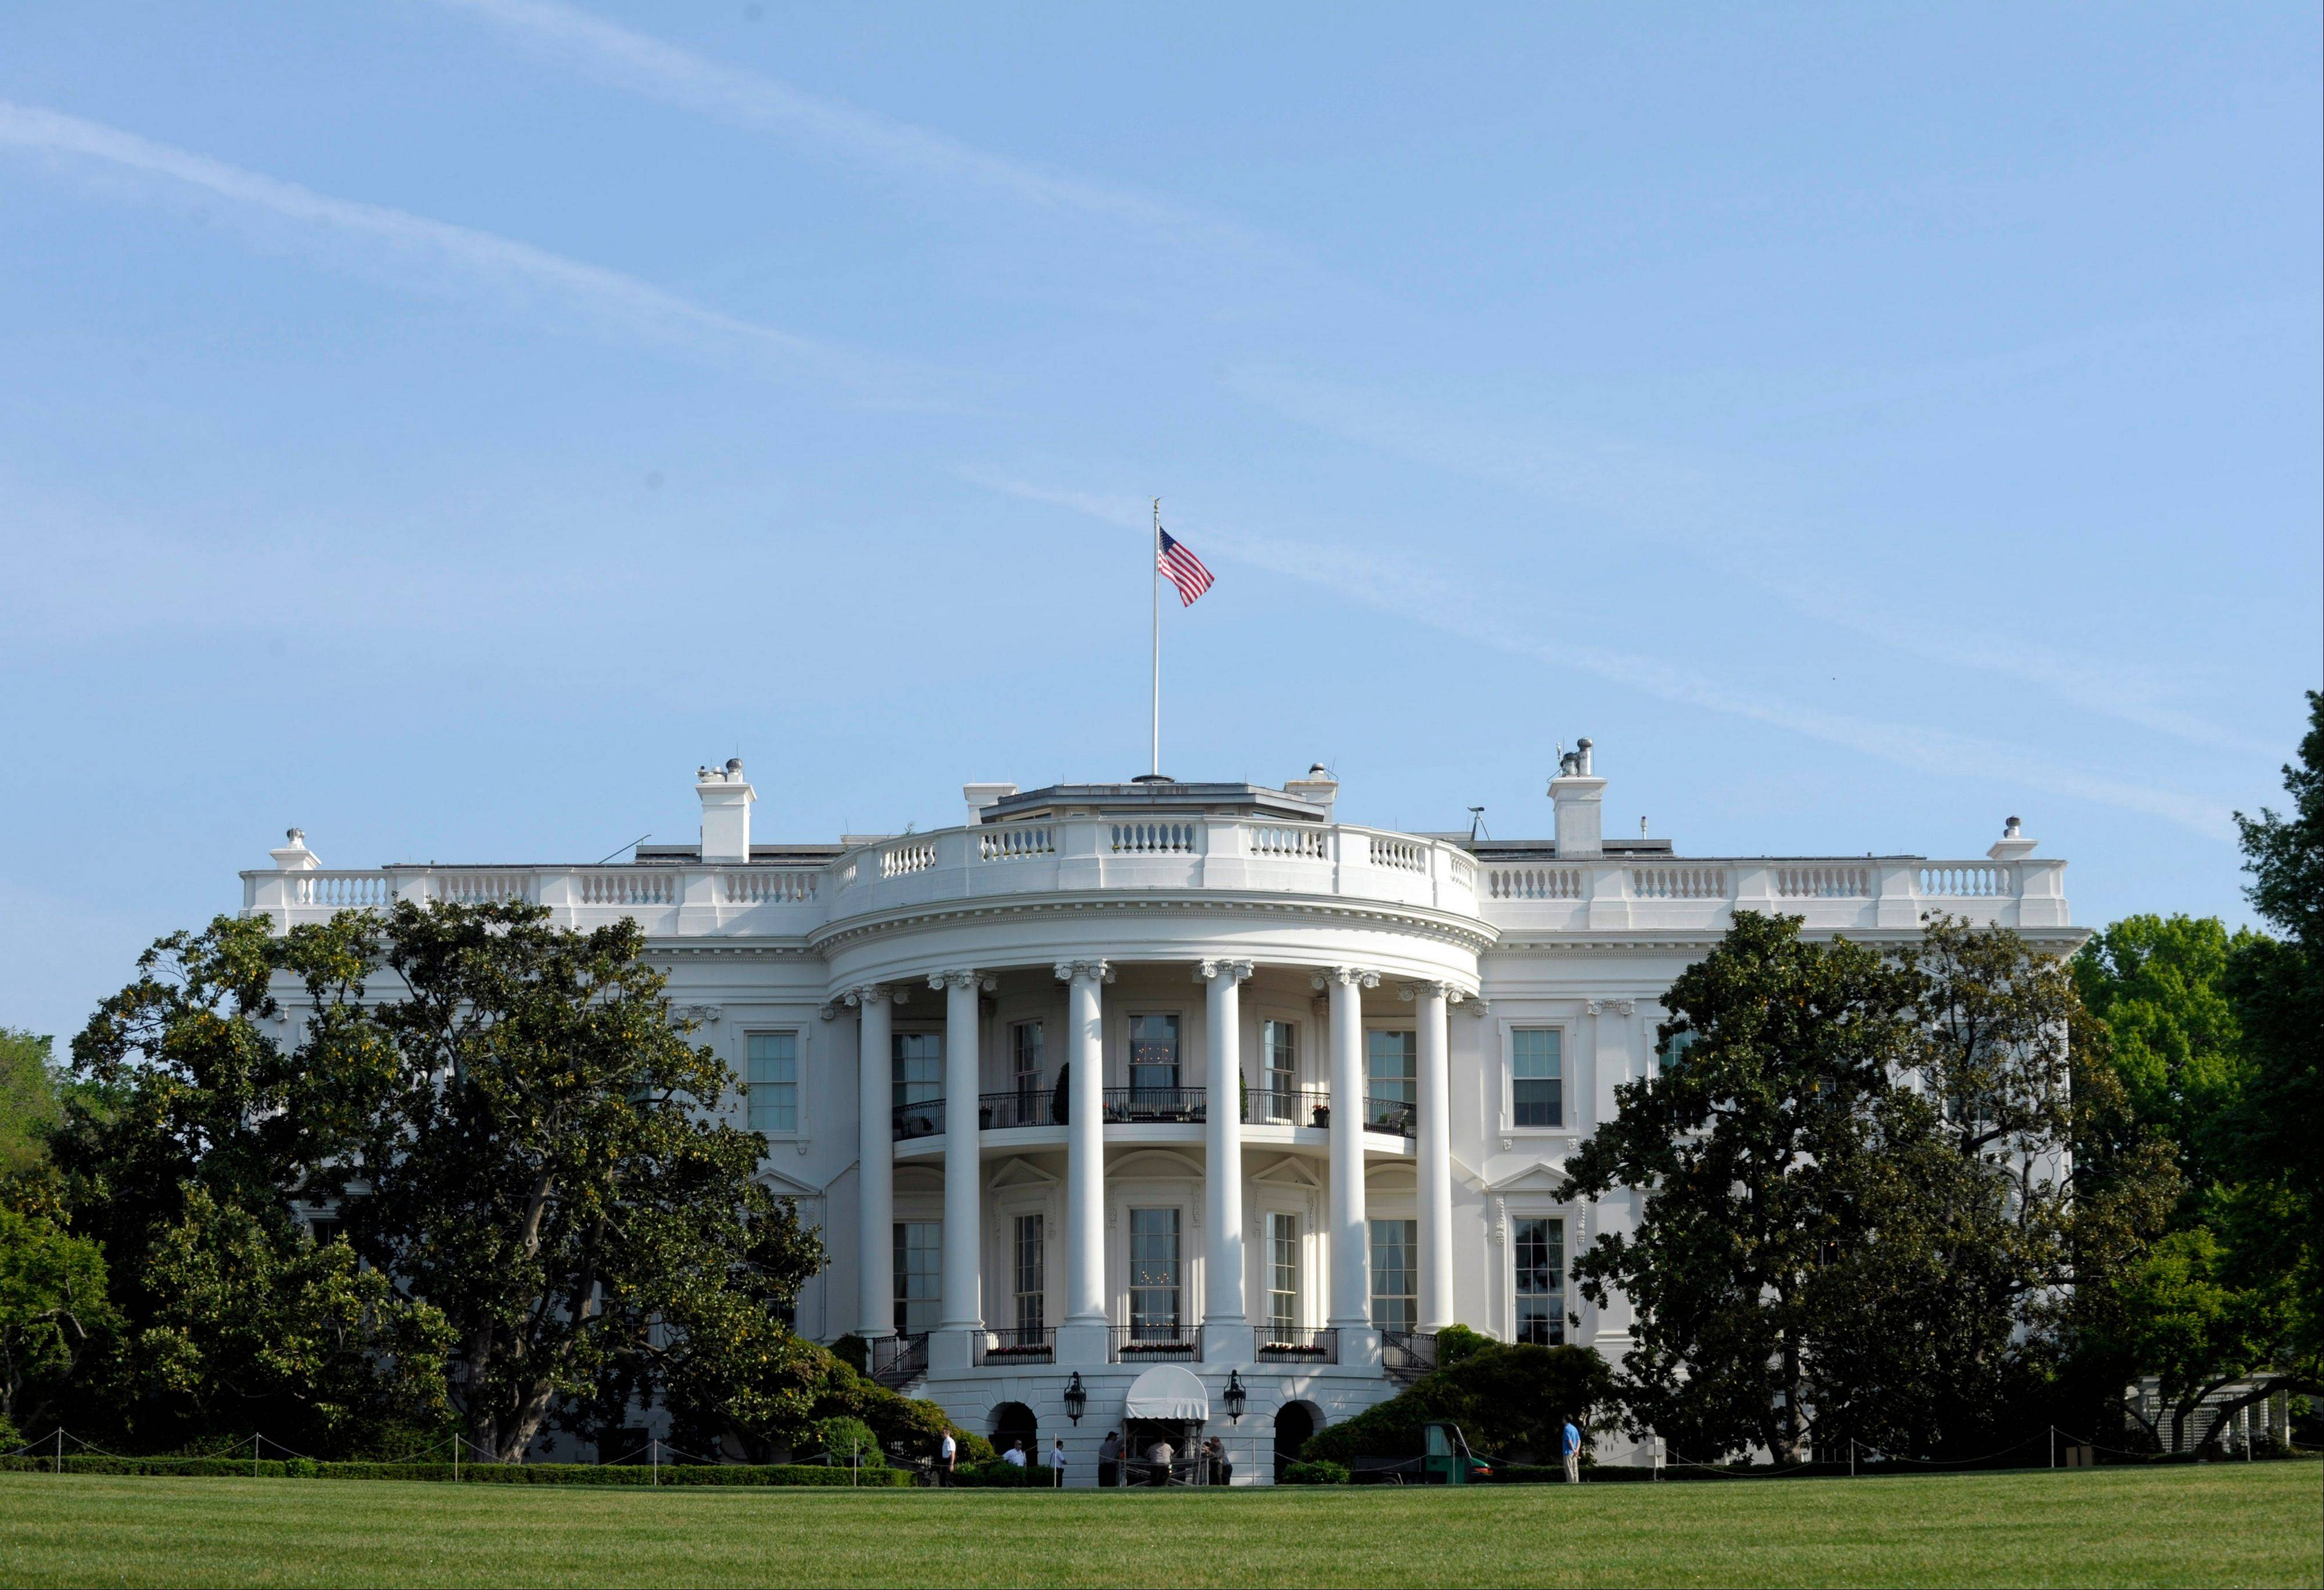 Public tours of the White House are back on the schedule, though on a limited basis, starting Nov. 5. The schedule will be reduced from five days a week to an average of three days a week through Jan. 15.